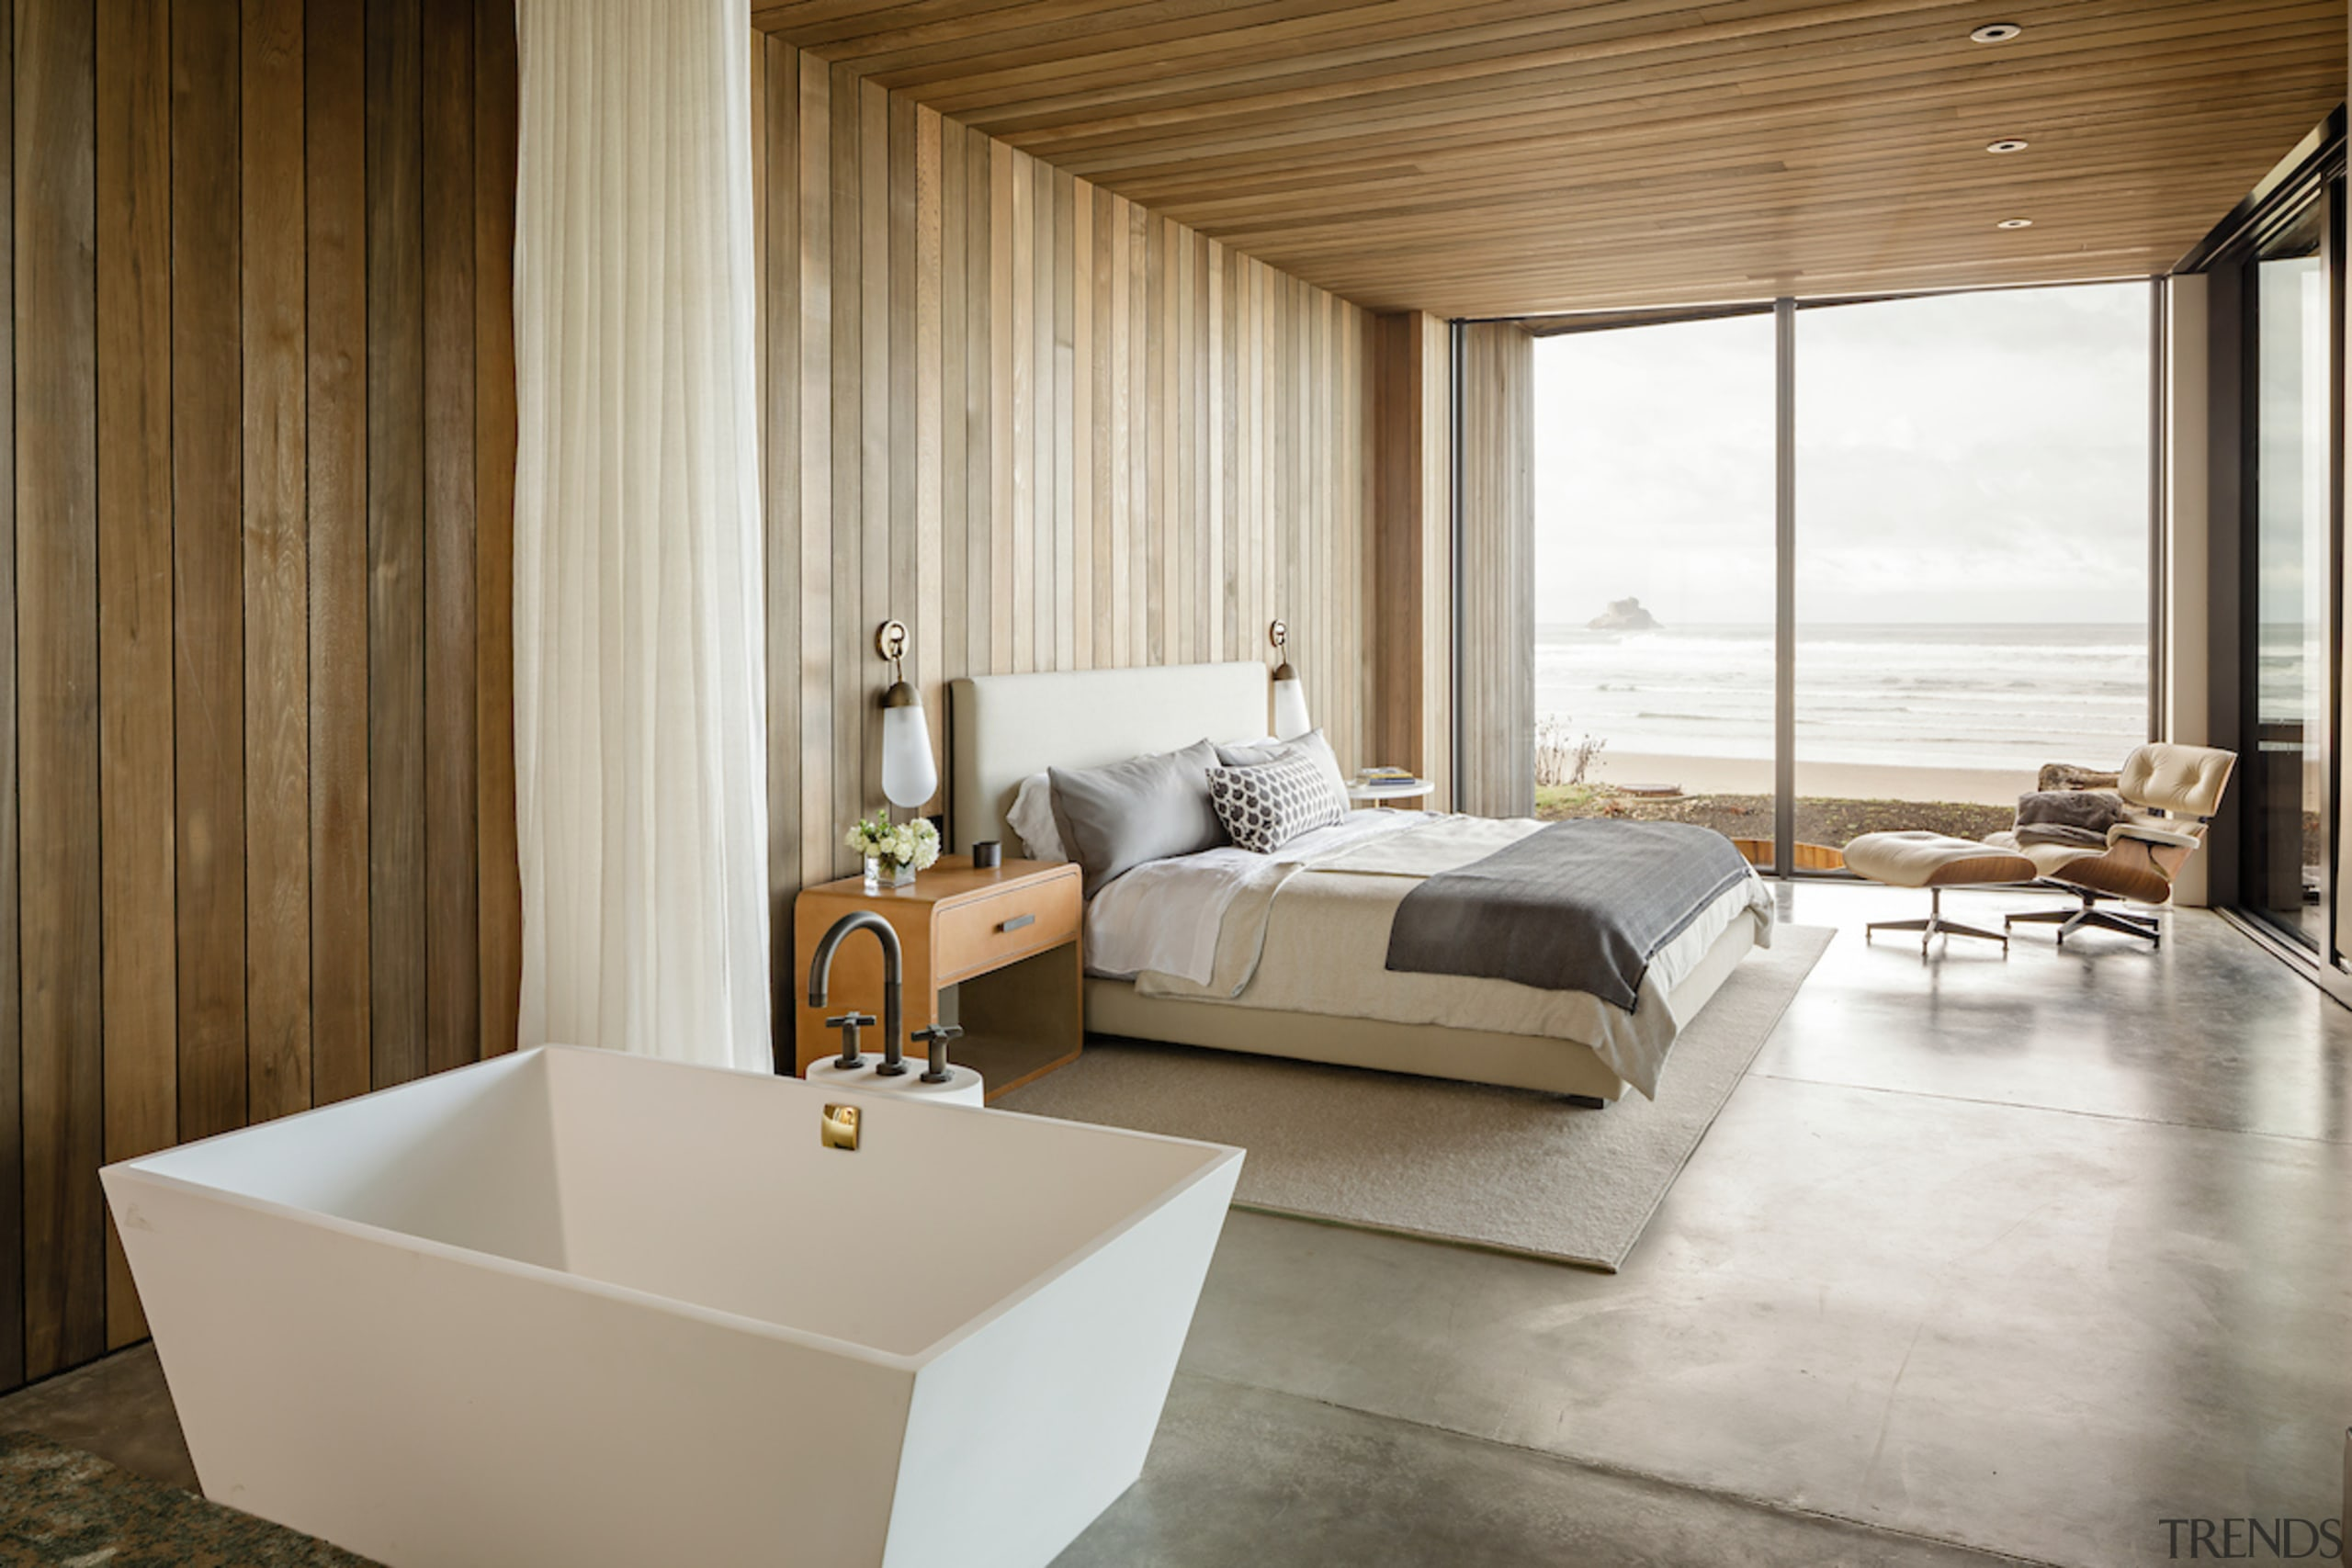 Muted tones in master ensuite reflect the surrounding architecture, bed, bed frame, ceiling, floor, flooring, furniture, interior design, mattress, room, suite, wood, gray, brown